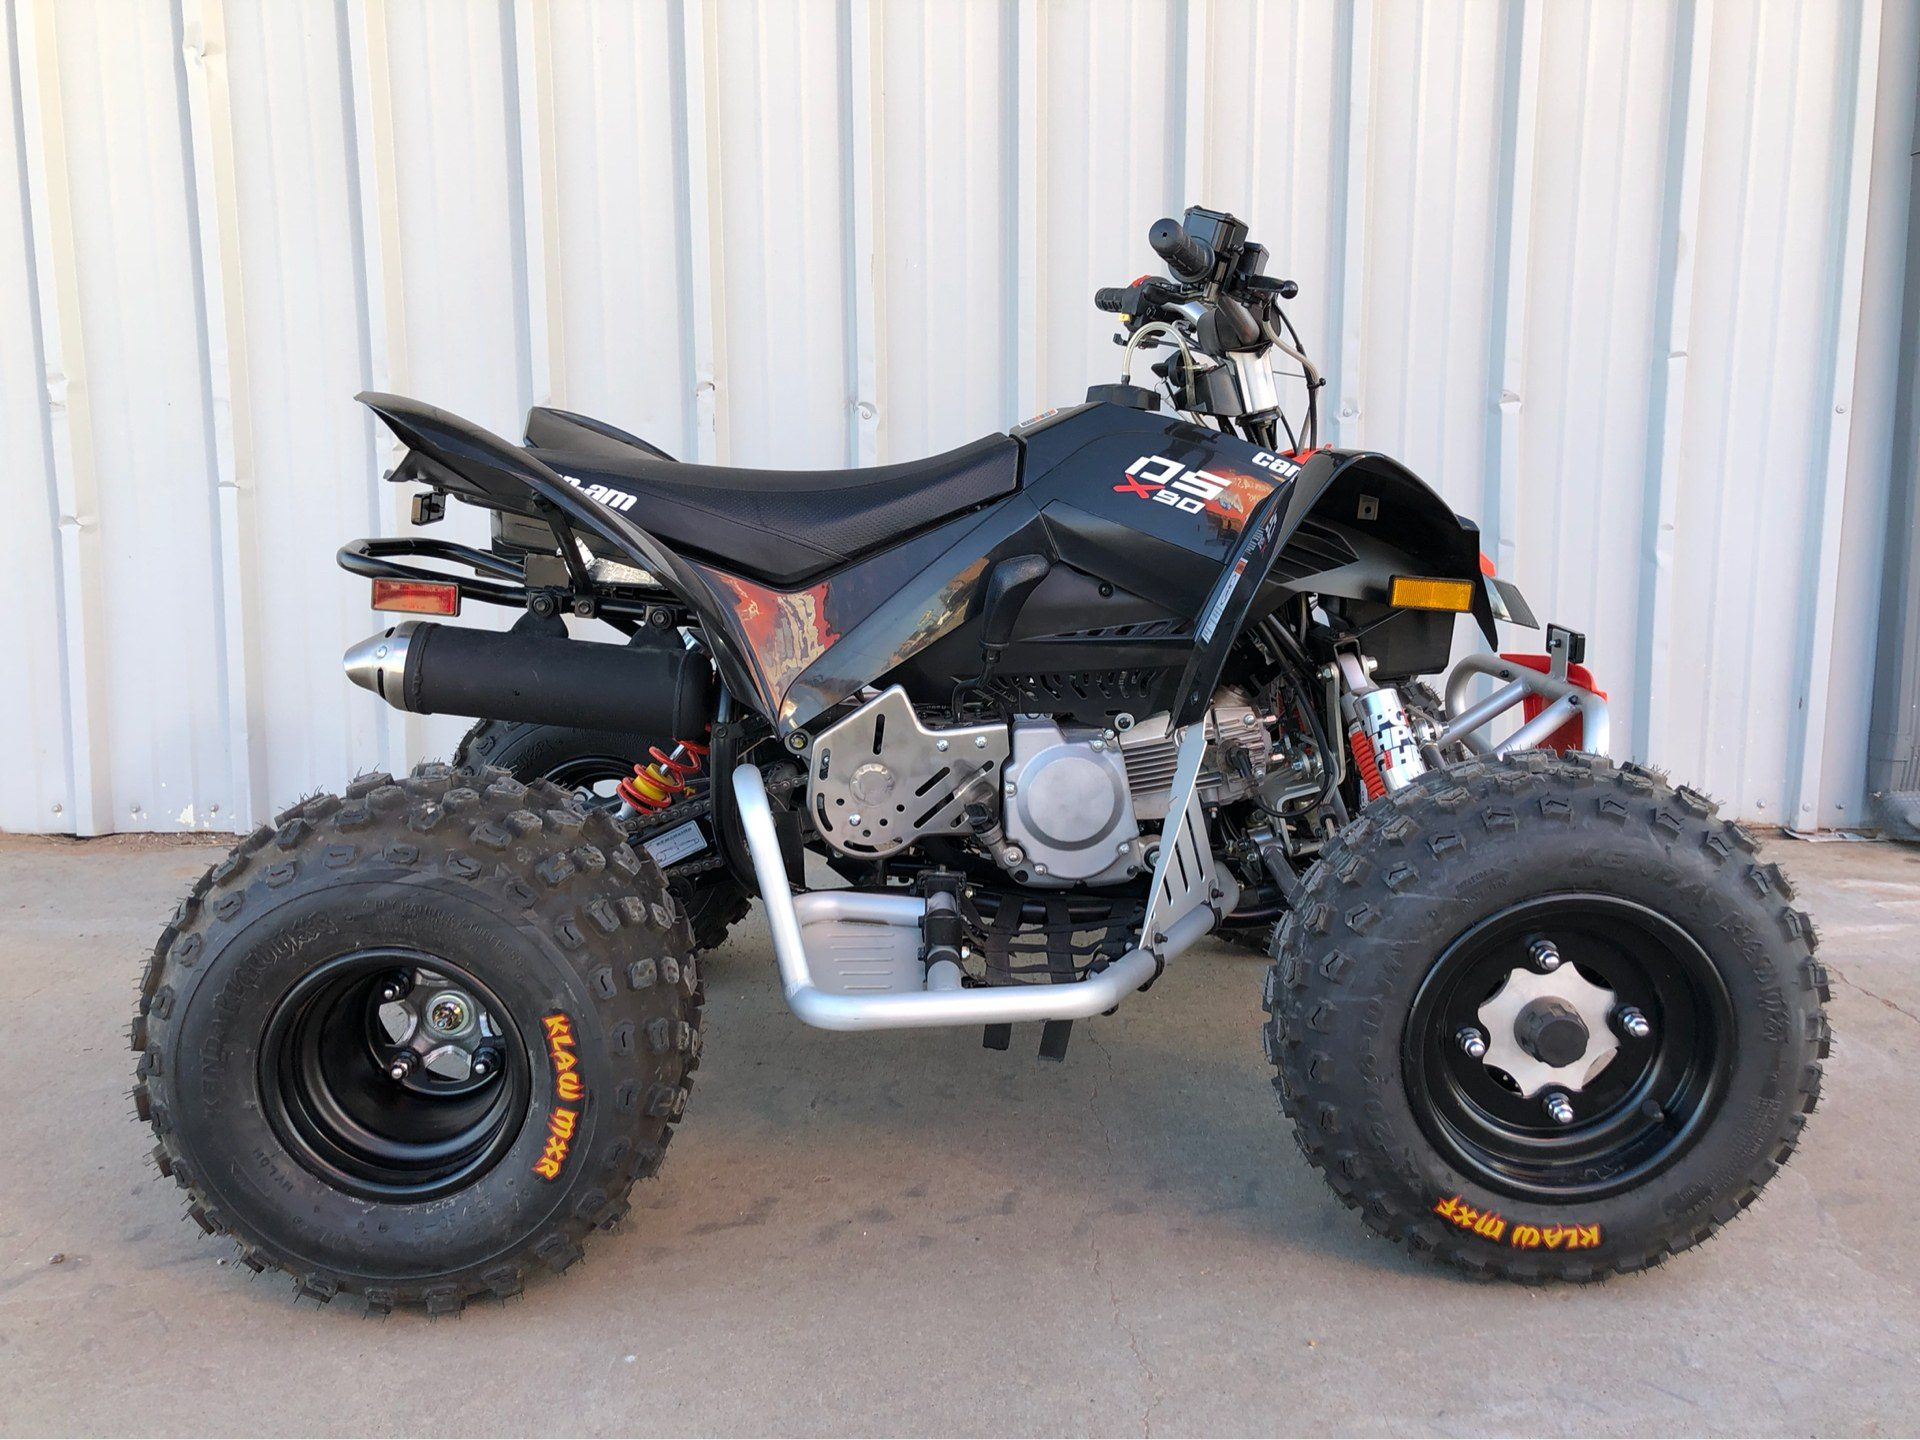 2019 Can-Am DS 90 X for sale 76578